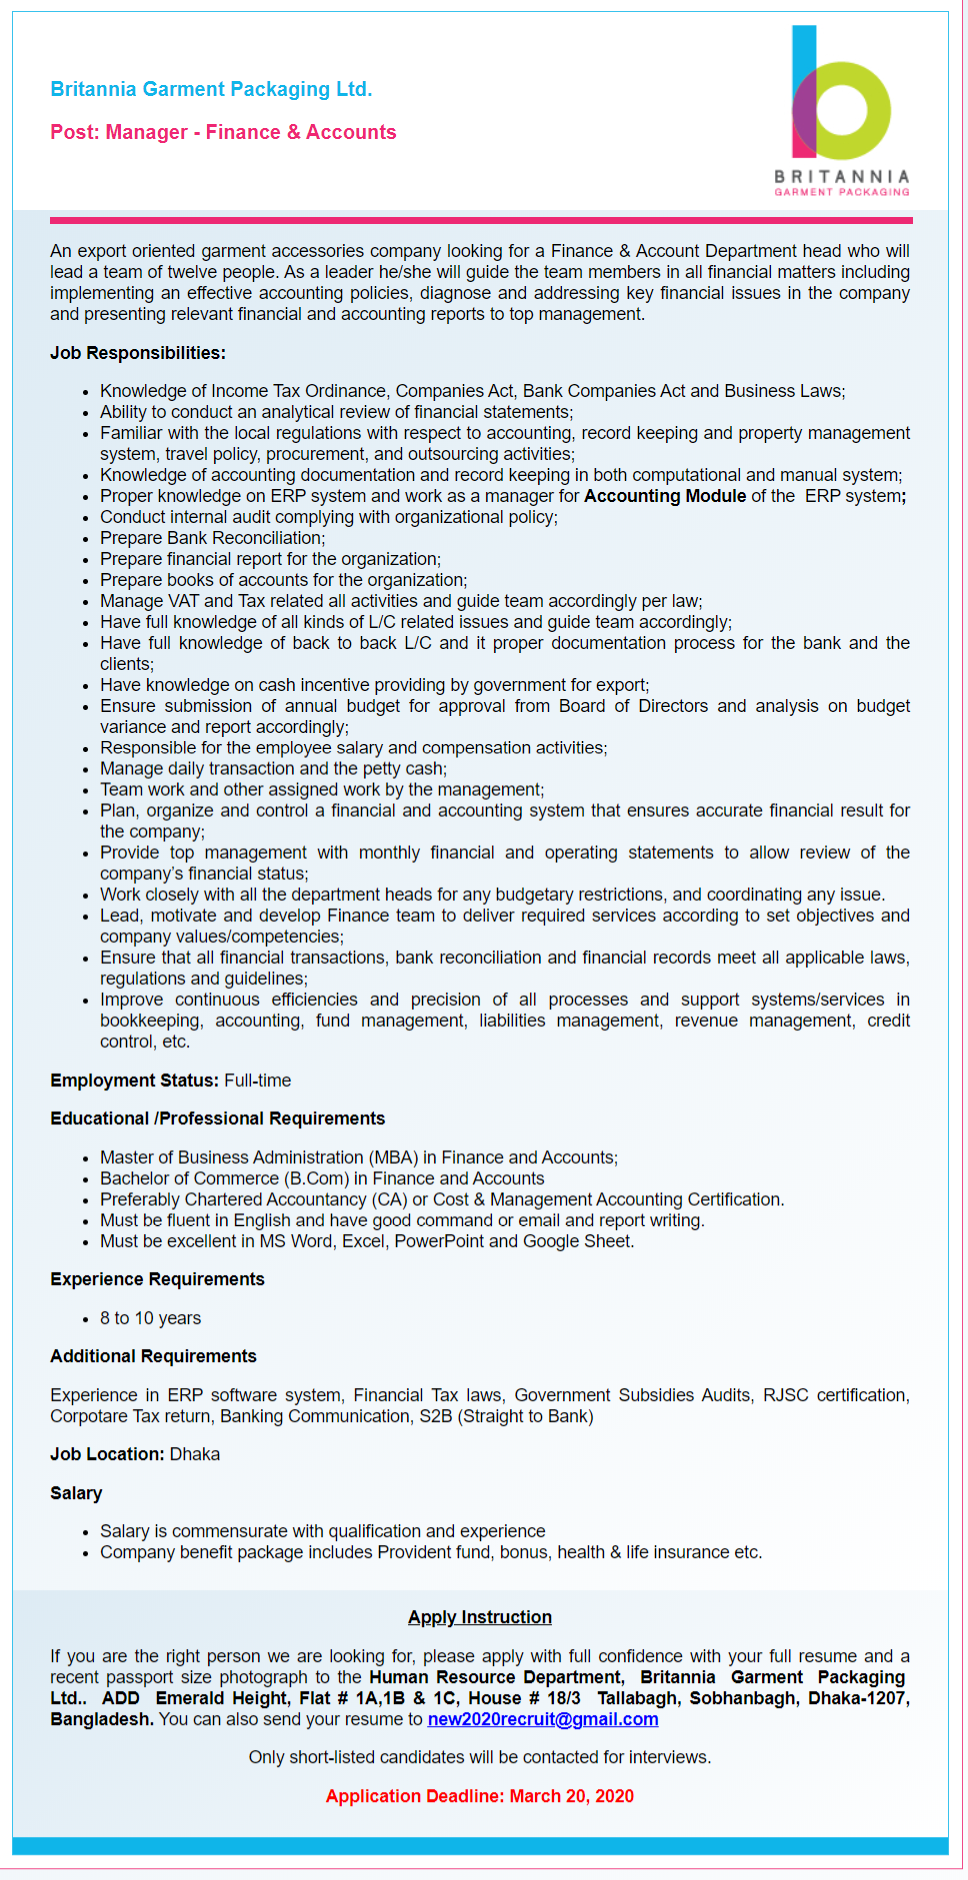 Britannia Garment Packaging Ltd Job Circular 2020 has been published for the job seekers who are join to Britannia Garment Packaging null position. You can check the private job full details with requirements from the bd jobs careers. Britannia Garment Packaging Ltd is a garments manufacturers company that has specialised in garment labels & packaging since 1976. With 11 global locations, we supply retailers & manufacturers around the world. So, let's check and read carefully are conditions which helps to know how to apply and successfully done your submission. ■ Organization Name: Britannia Garment Packaging Ltd ■ Post Position Name: Manager - Finance & Accounts ■ Job Published Date: 5 March 2020 ■ Application Deadline: 20 March 2020 ■ Salary: N/A ■ Educational Requirements: See Job Circular Image ■ Experience Requirements: See Job Circular Image ■ Number of Job Vacancy: N/A ■ Website: http://www.britanniapackaging.com/ ■ Jobs Location: Anywhere in Bangladesh. ■ Job Source: BD Jobs ■ Job Nature: Full-time ■ Job Type: Private Company ■ Applying Procedure: See Job Circular Image Britannia Garment Packaging Ltd Job Circular 2020- www.britanniapackaging.com If you want to job news such as Britannia Garment Packaging Ltd Job Circular 2020 to go on company web address and visit www.bdjobscareers.com, here you will get vast information about the job. For more bd job news to see our more job news such as company job, group of company job, hospital job, and many more. For instant update to like Facebook page and join group. Thanks for your time being.